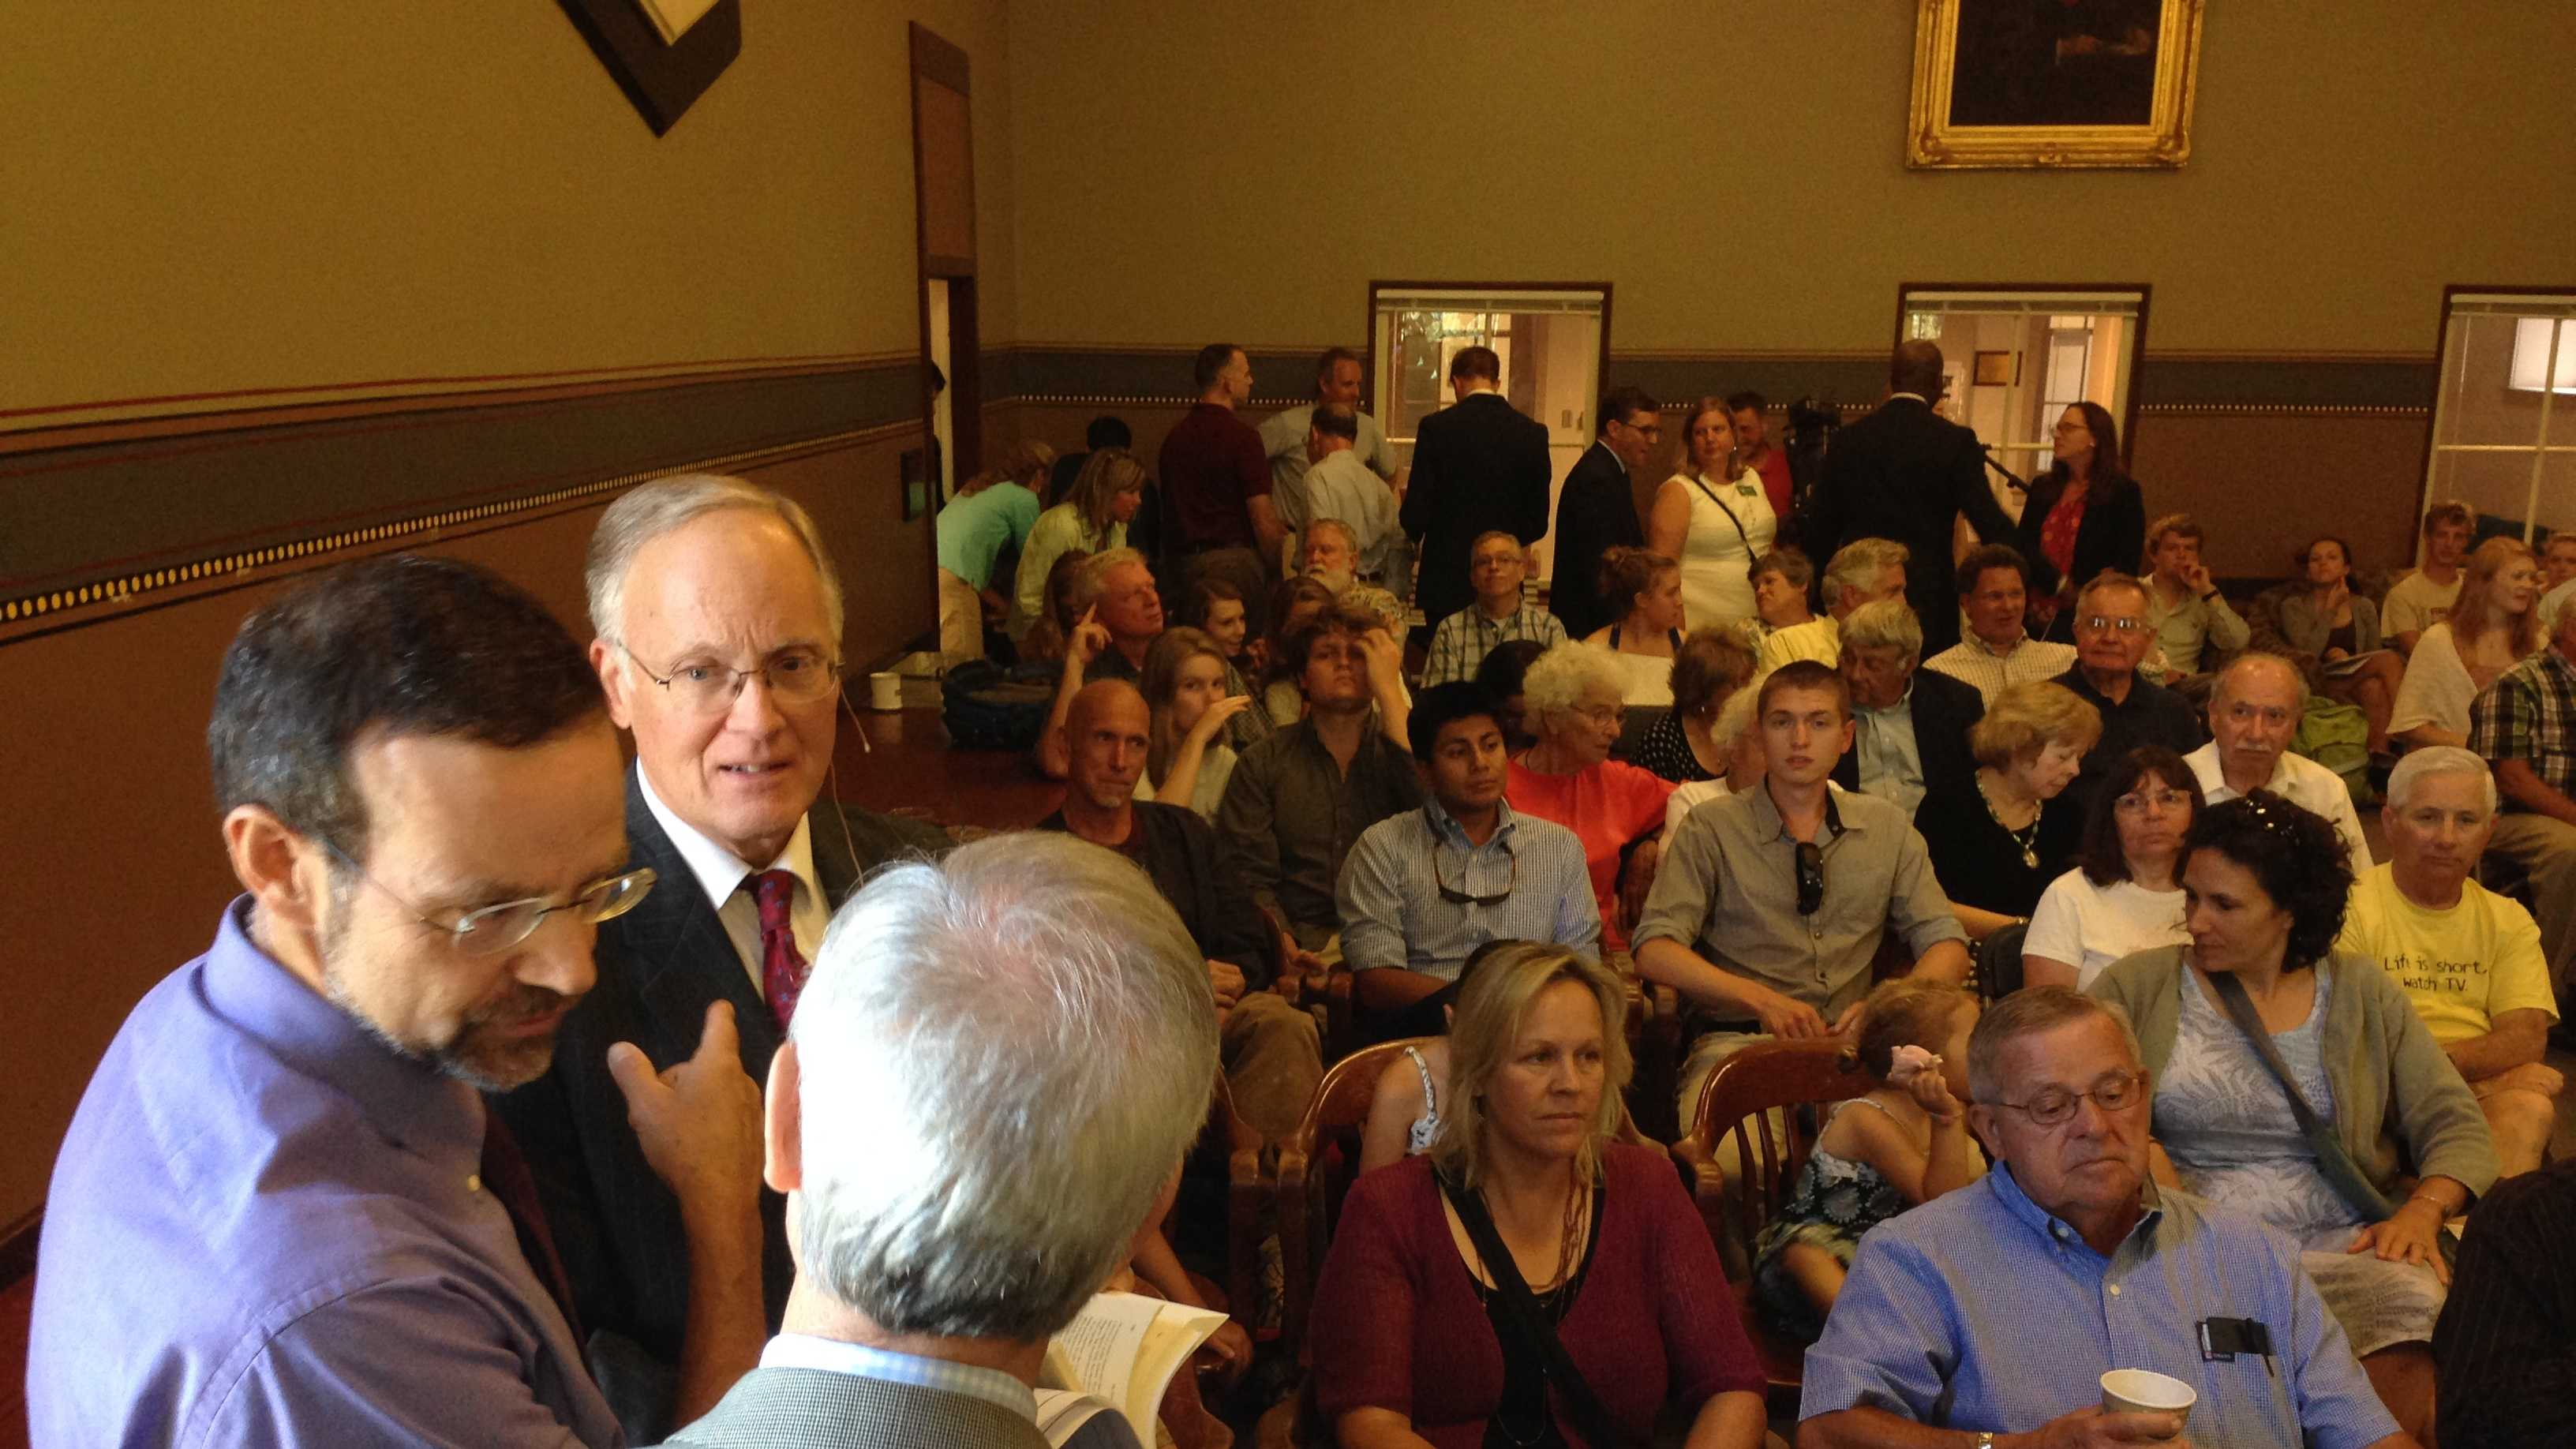 Former governor Jim Douglas prepares to address a crowd at UVM gathered for the release of his new memoir.